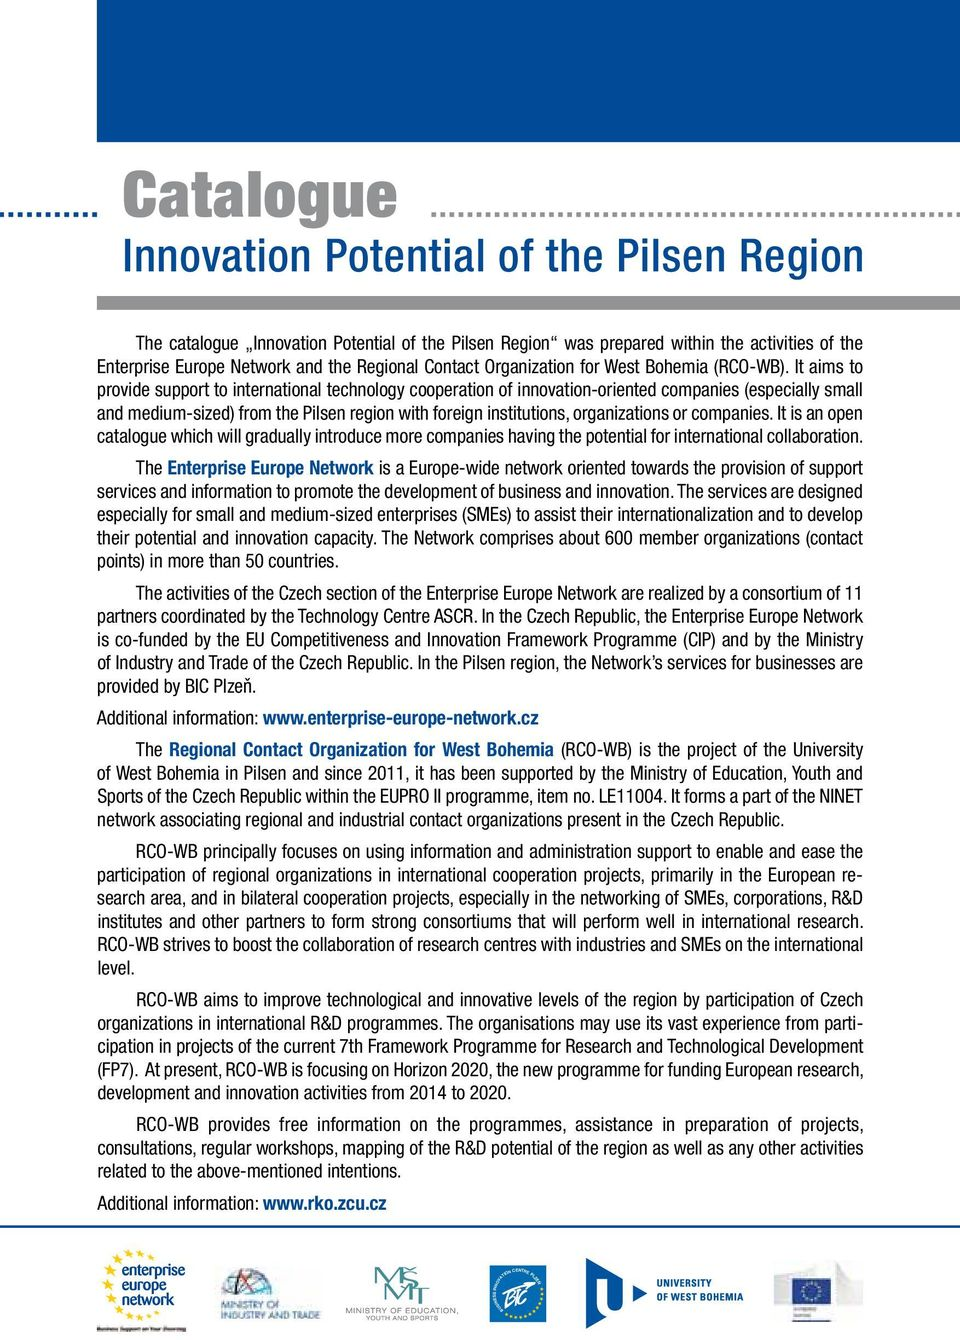 It aims to provide support to international technology cooperation of innovation-oriented companies (especially small and medium-sized) from the Pilsen region with foreign institutions, organizations